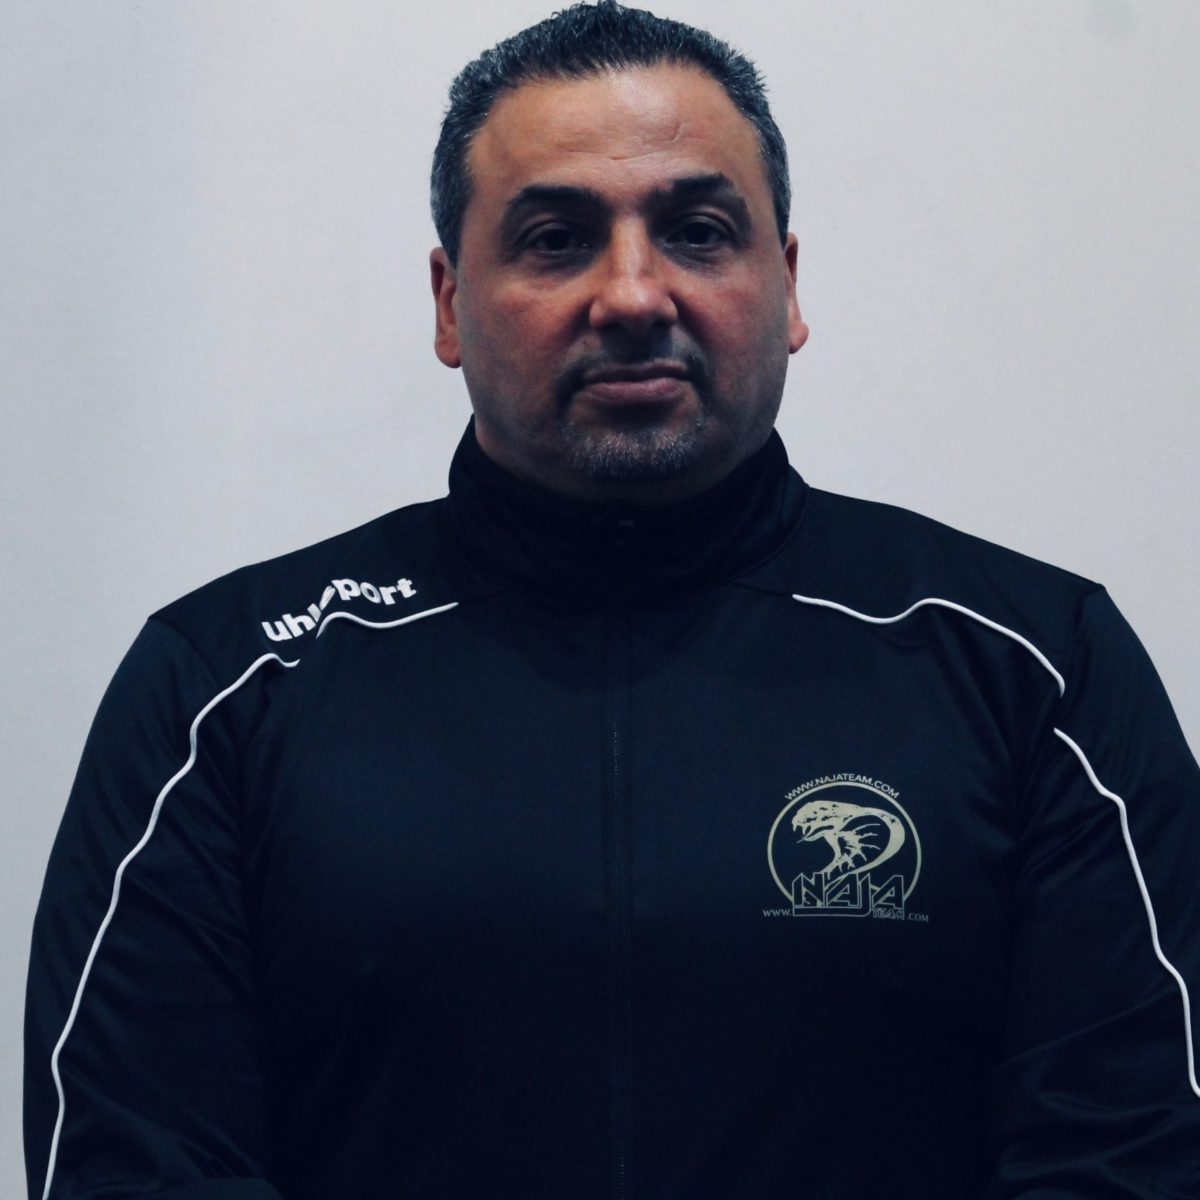 Hassan - Coach de Boxe Thai - Naja Team